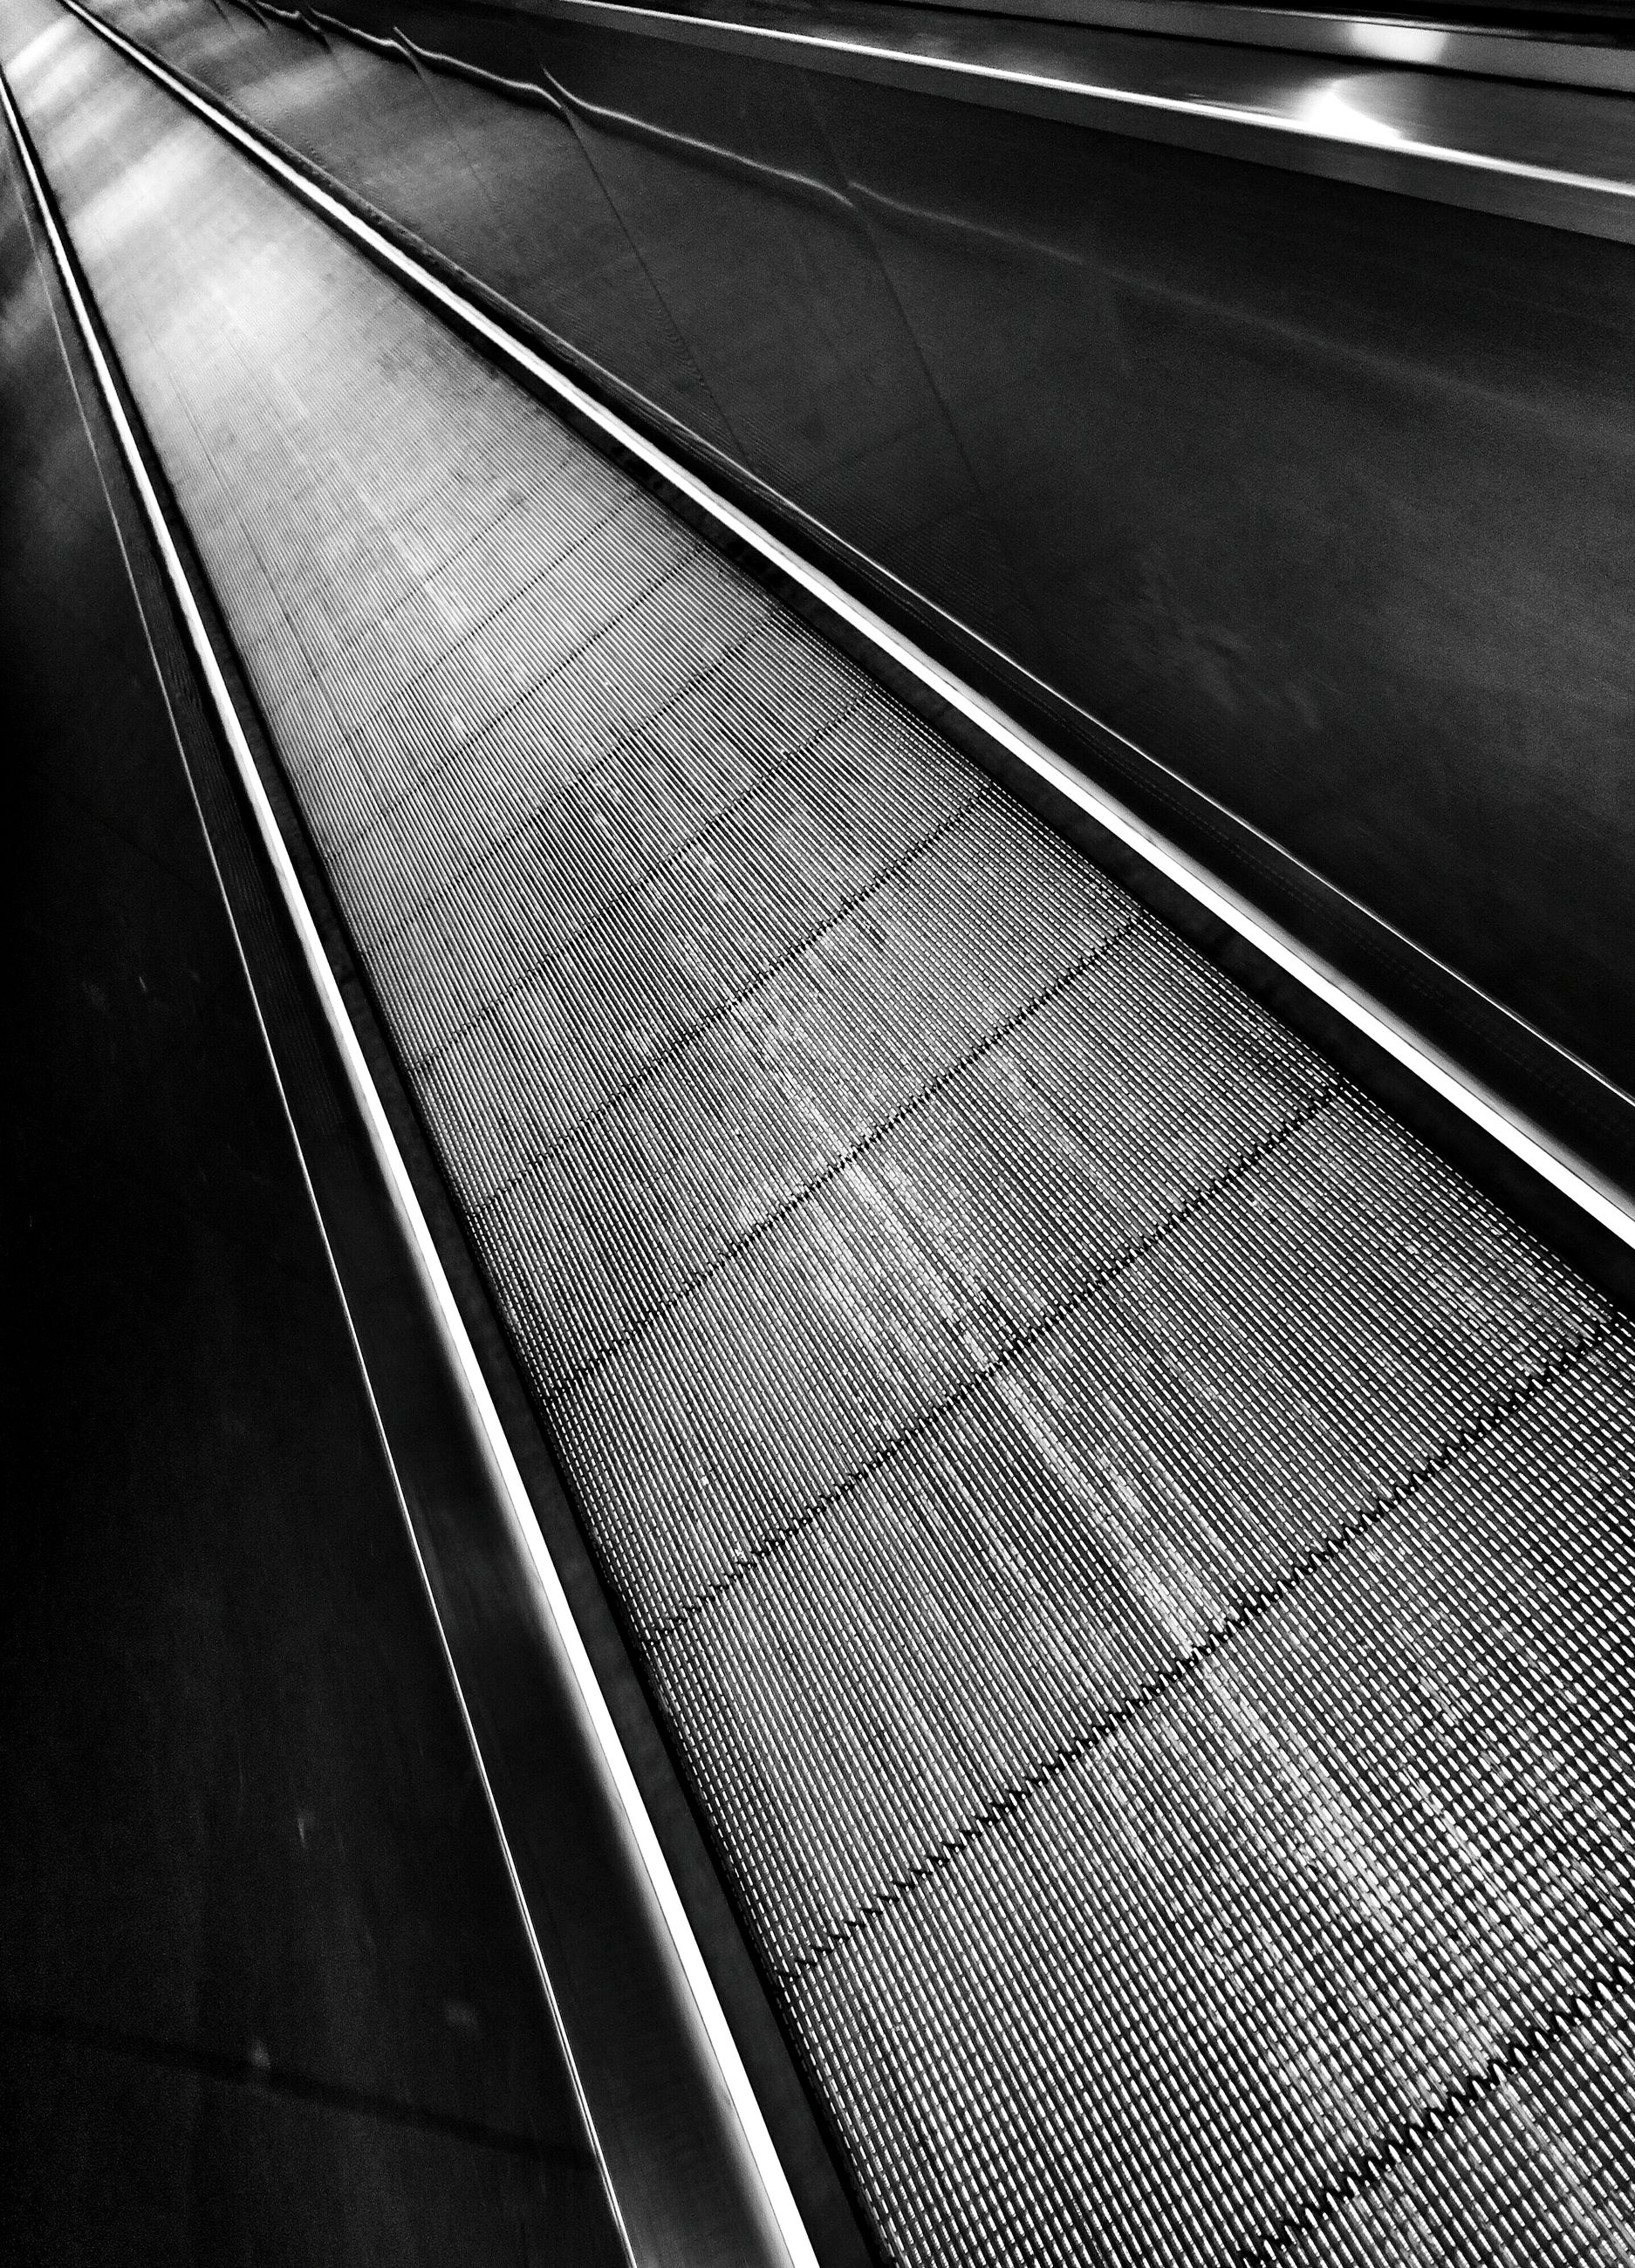 transportation, railroad track, high angle view, mode of transport, the way forward, road marking, diminishing perspective, indoors, road, rail transportation, pattern, vanishing point, on the move, public transportation, metal, travel, empty, no people, asphalt, speed